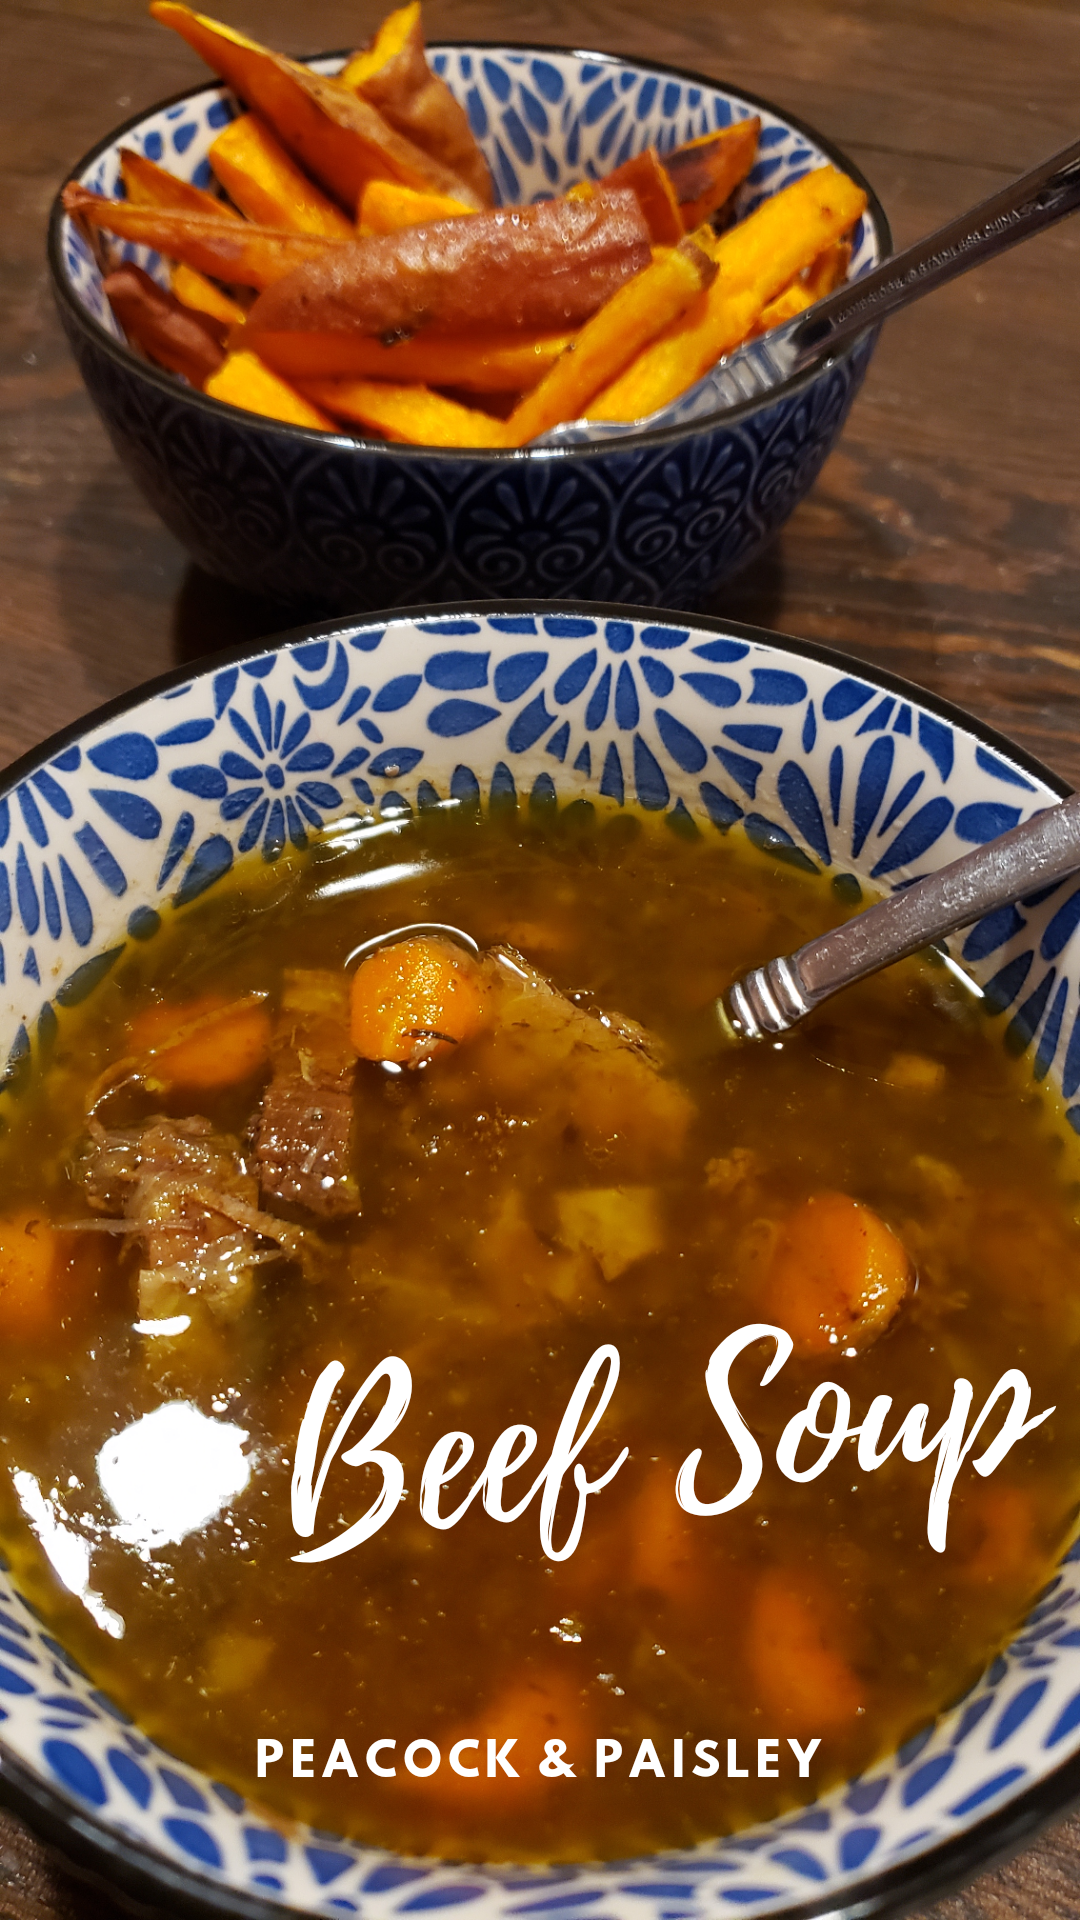 grain-free beef soup recipe from Peacock and Paisley